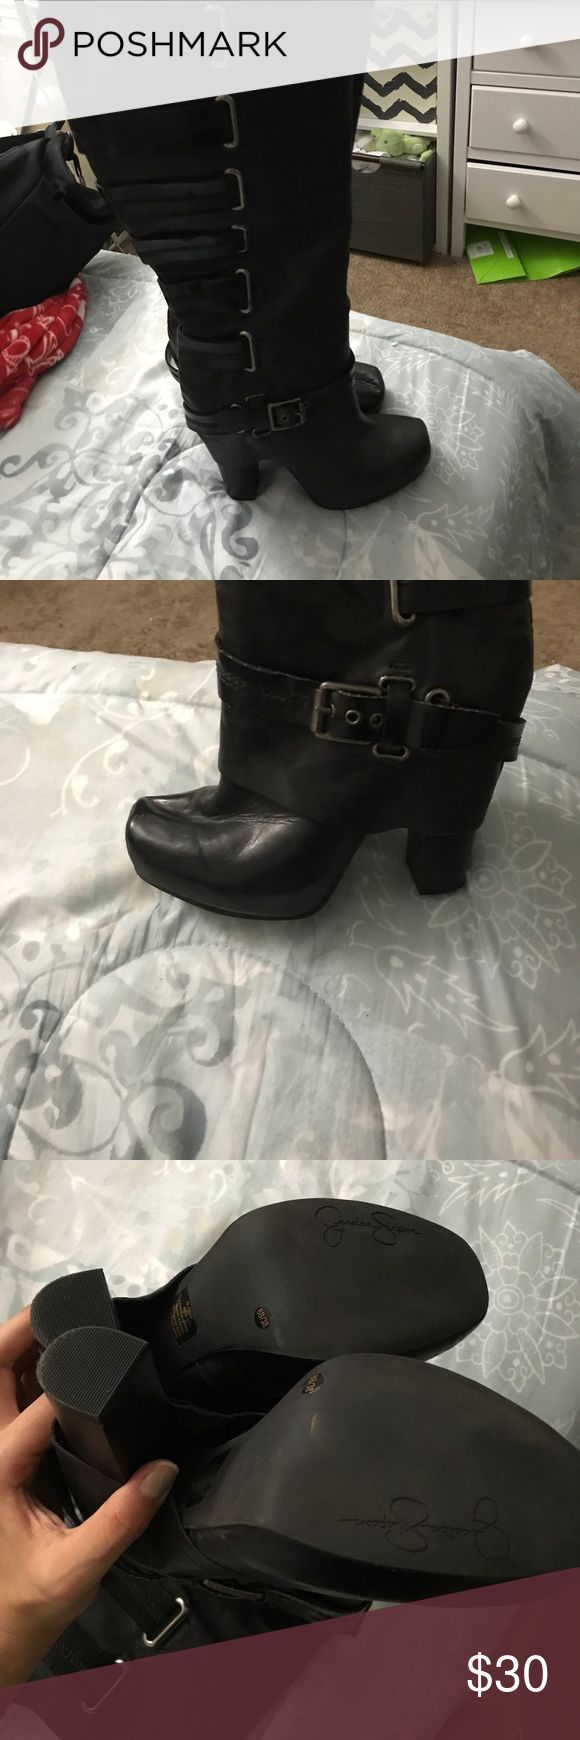 Jessica Simpson boots Very cute black boots in new condition the only thing is that one of the boots has a fold shown in pic. Other than that they are great Jessica Simpson Shoes Heeled Boots